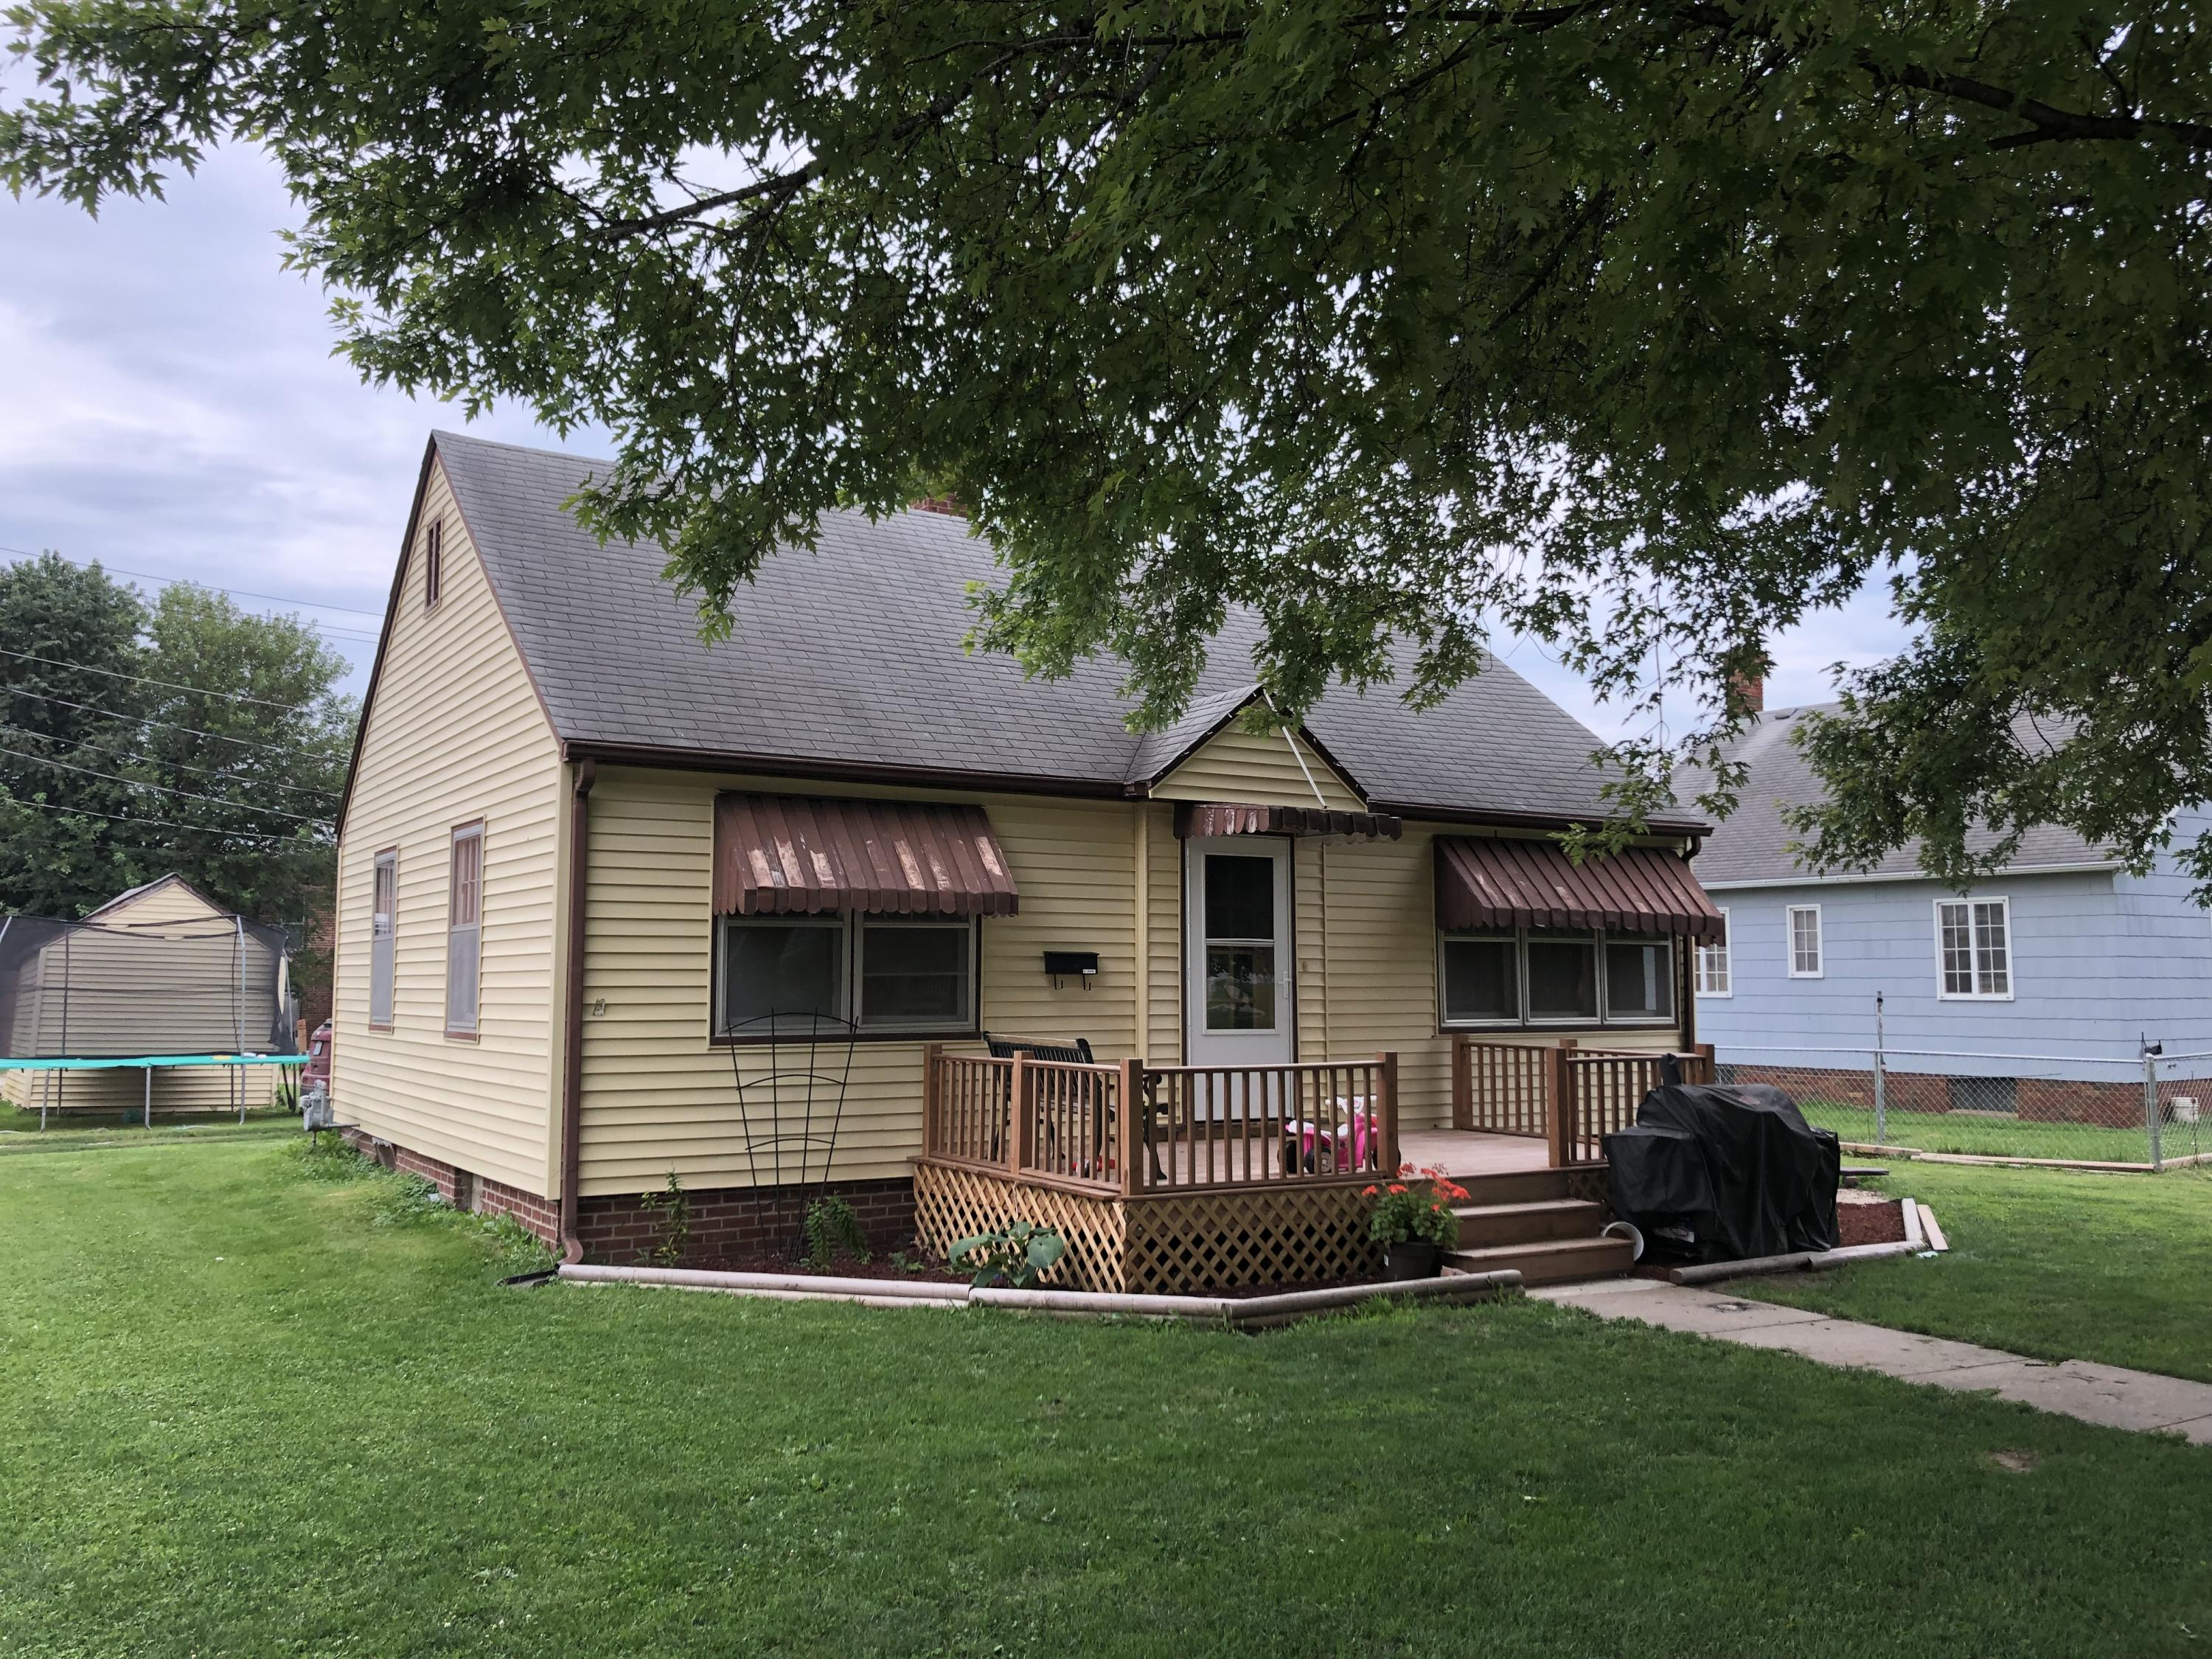 307 S MARKET Street, Rock Port, Missouri 64482, 2 Bedrooms Bedrooms, ,1 BathroomBathrooms,Residential,MARKET,4531